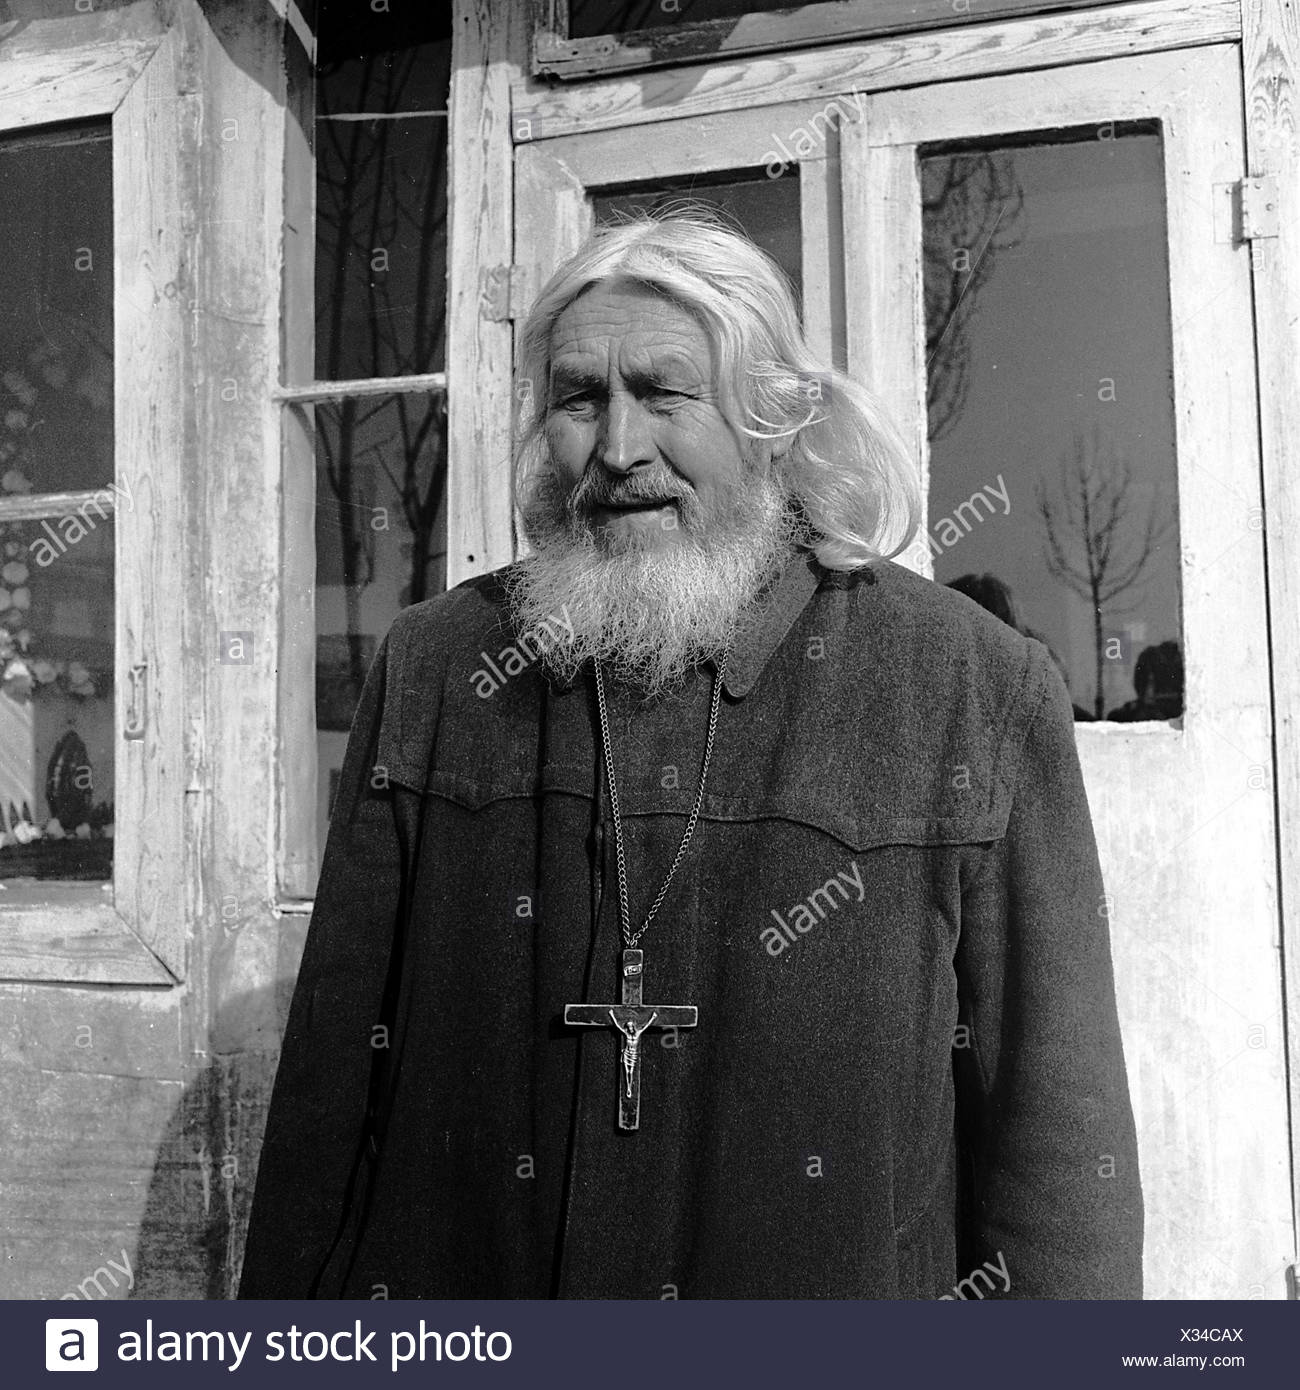 Timofey (born Timofey Vasilevich Prochorov), 22.1.1894 - 13.7.2004, Russian hermit in Munich, Germany, half length, 1968, Additional-Rights-Clearances-NA - Stock Image